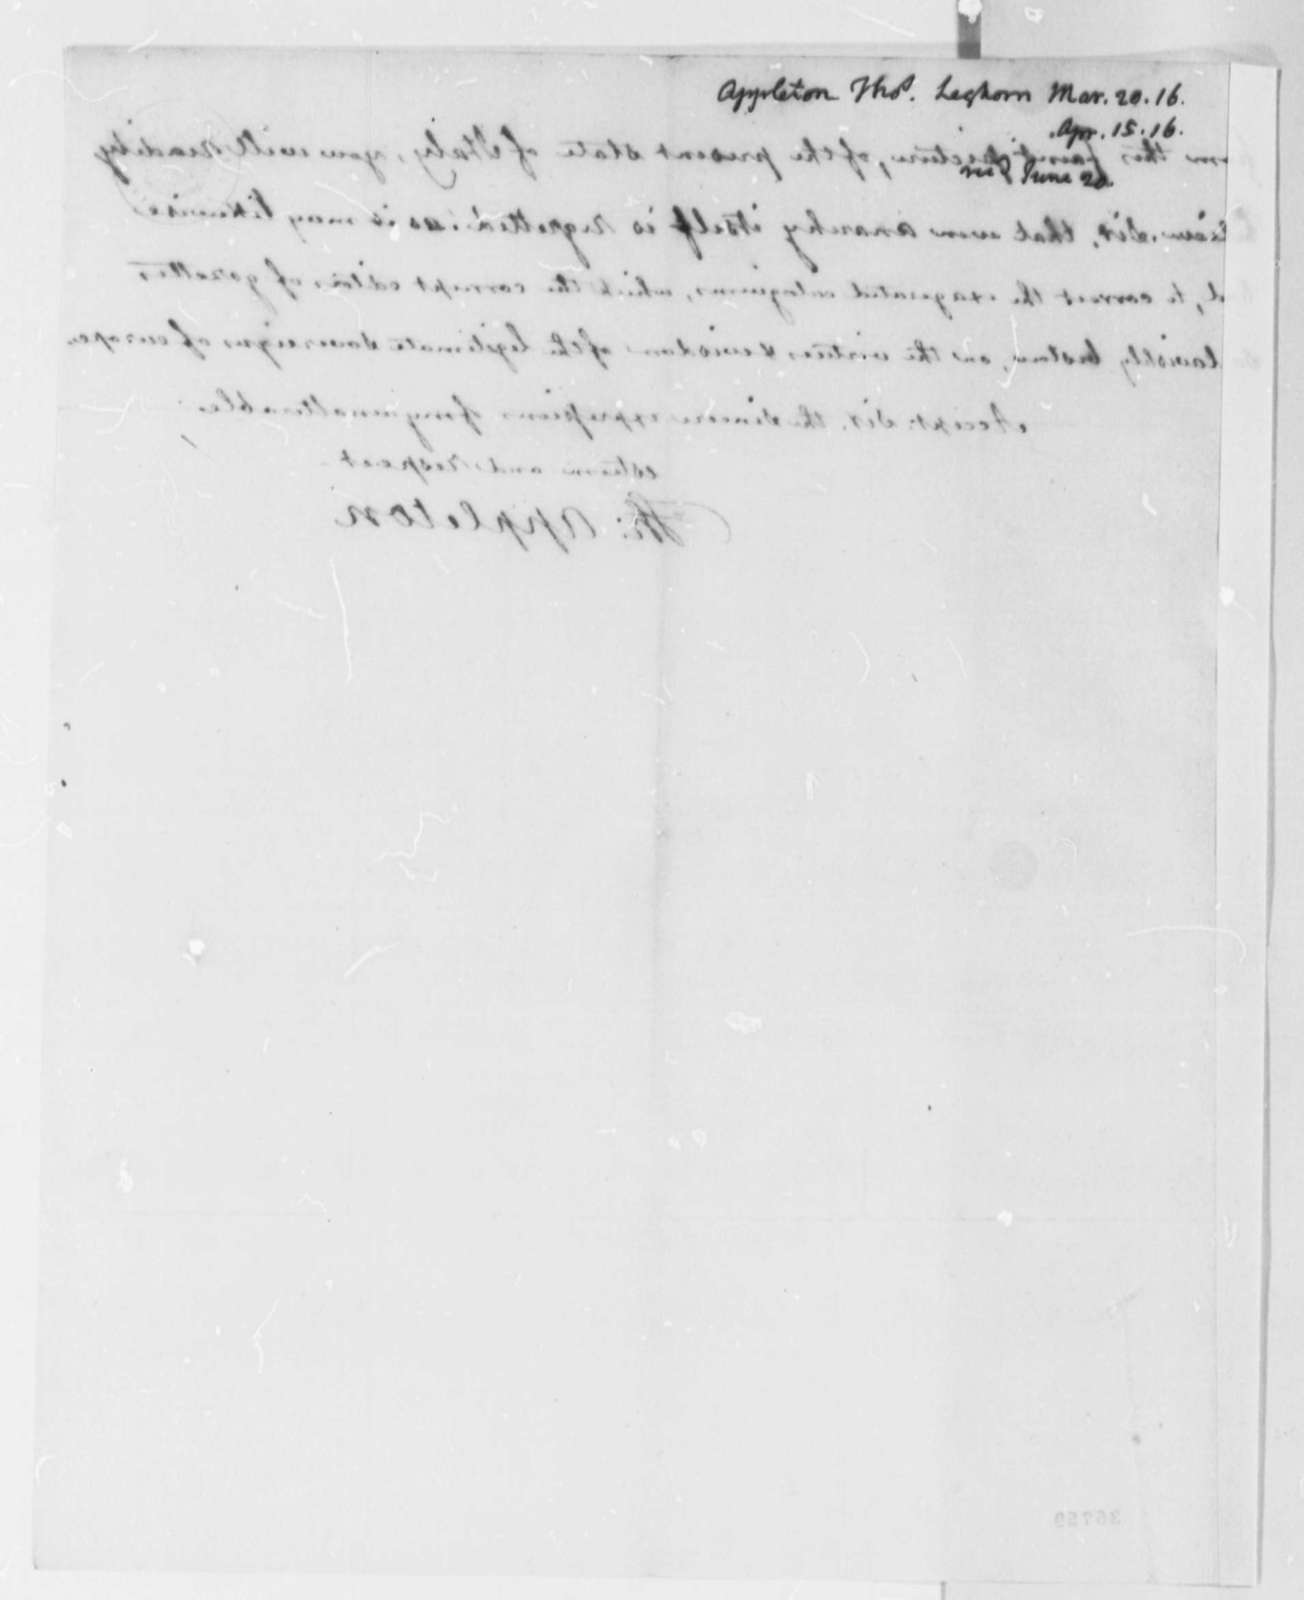 Thomas Appleton to Thomas Jefferson, April 15, 1816